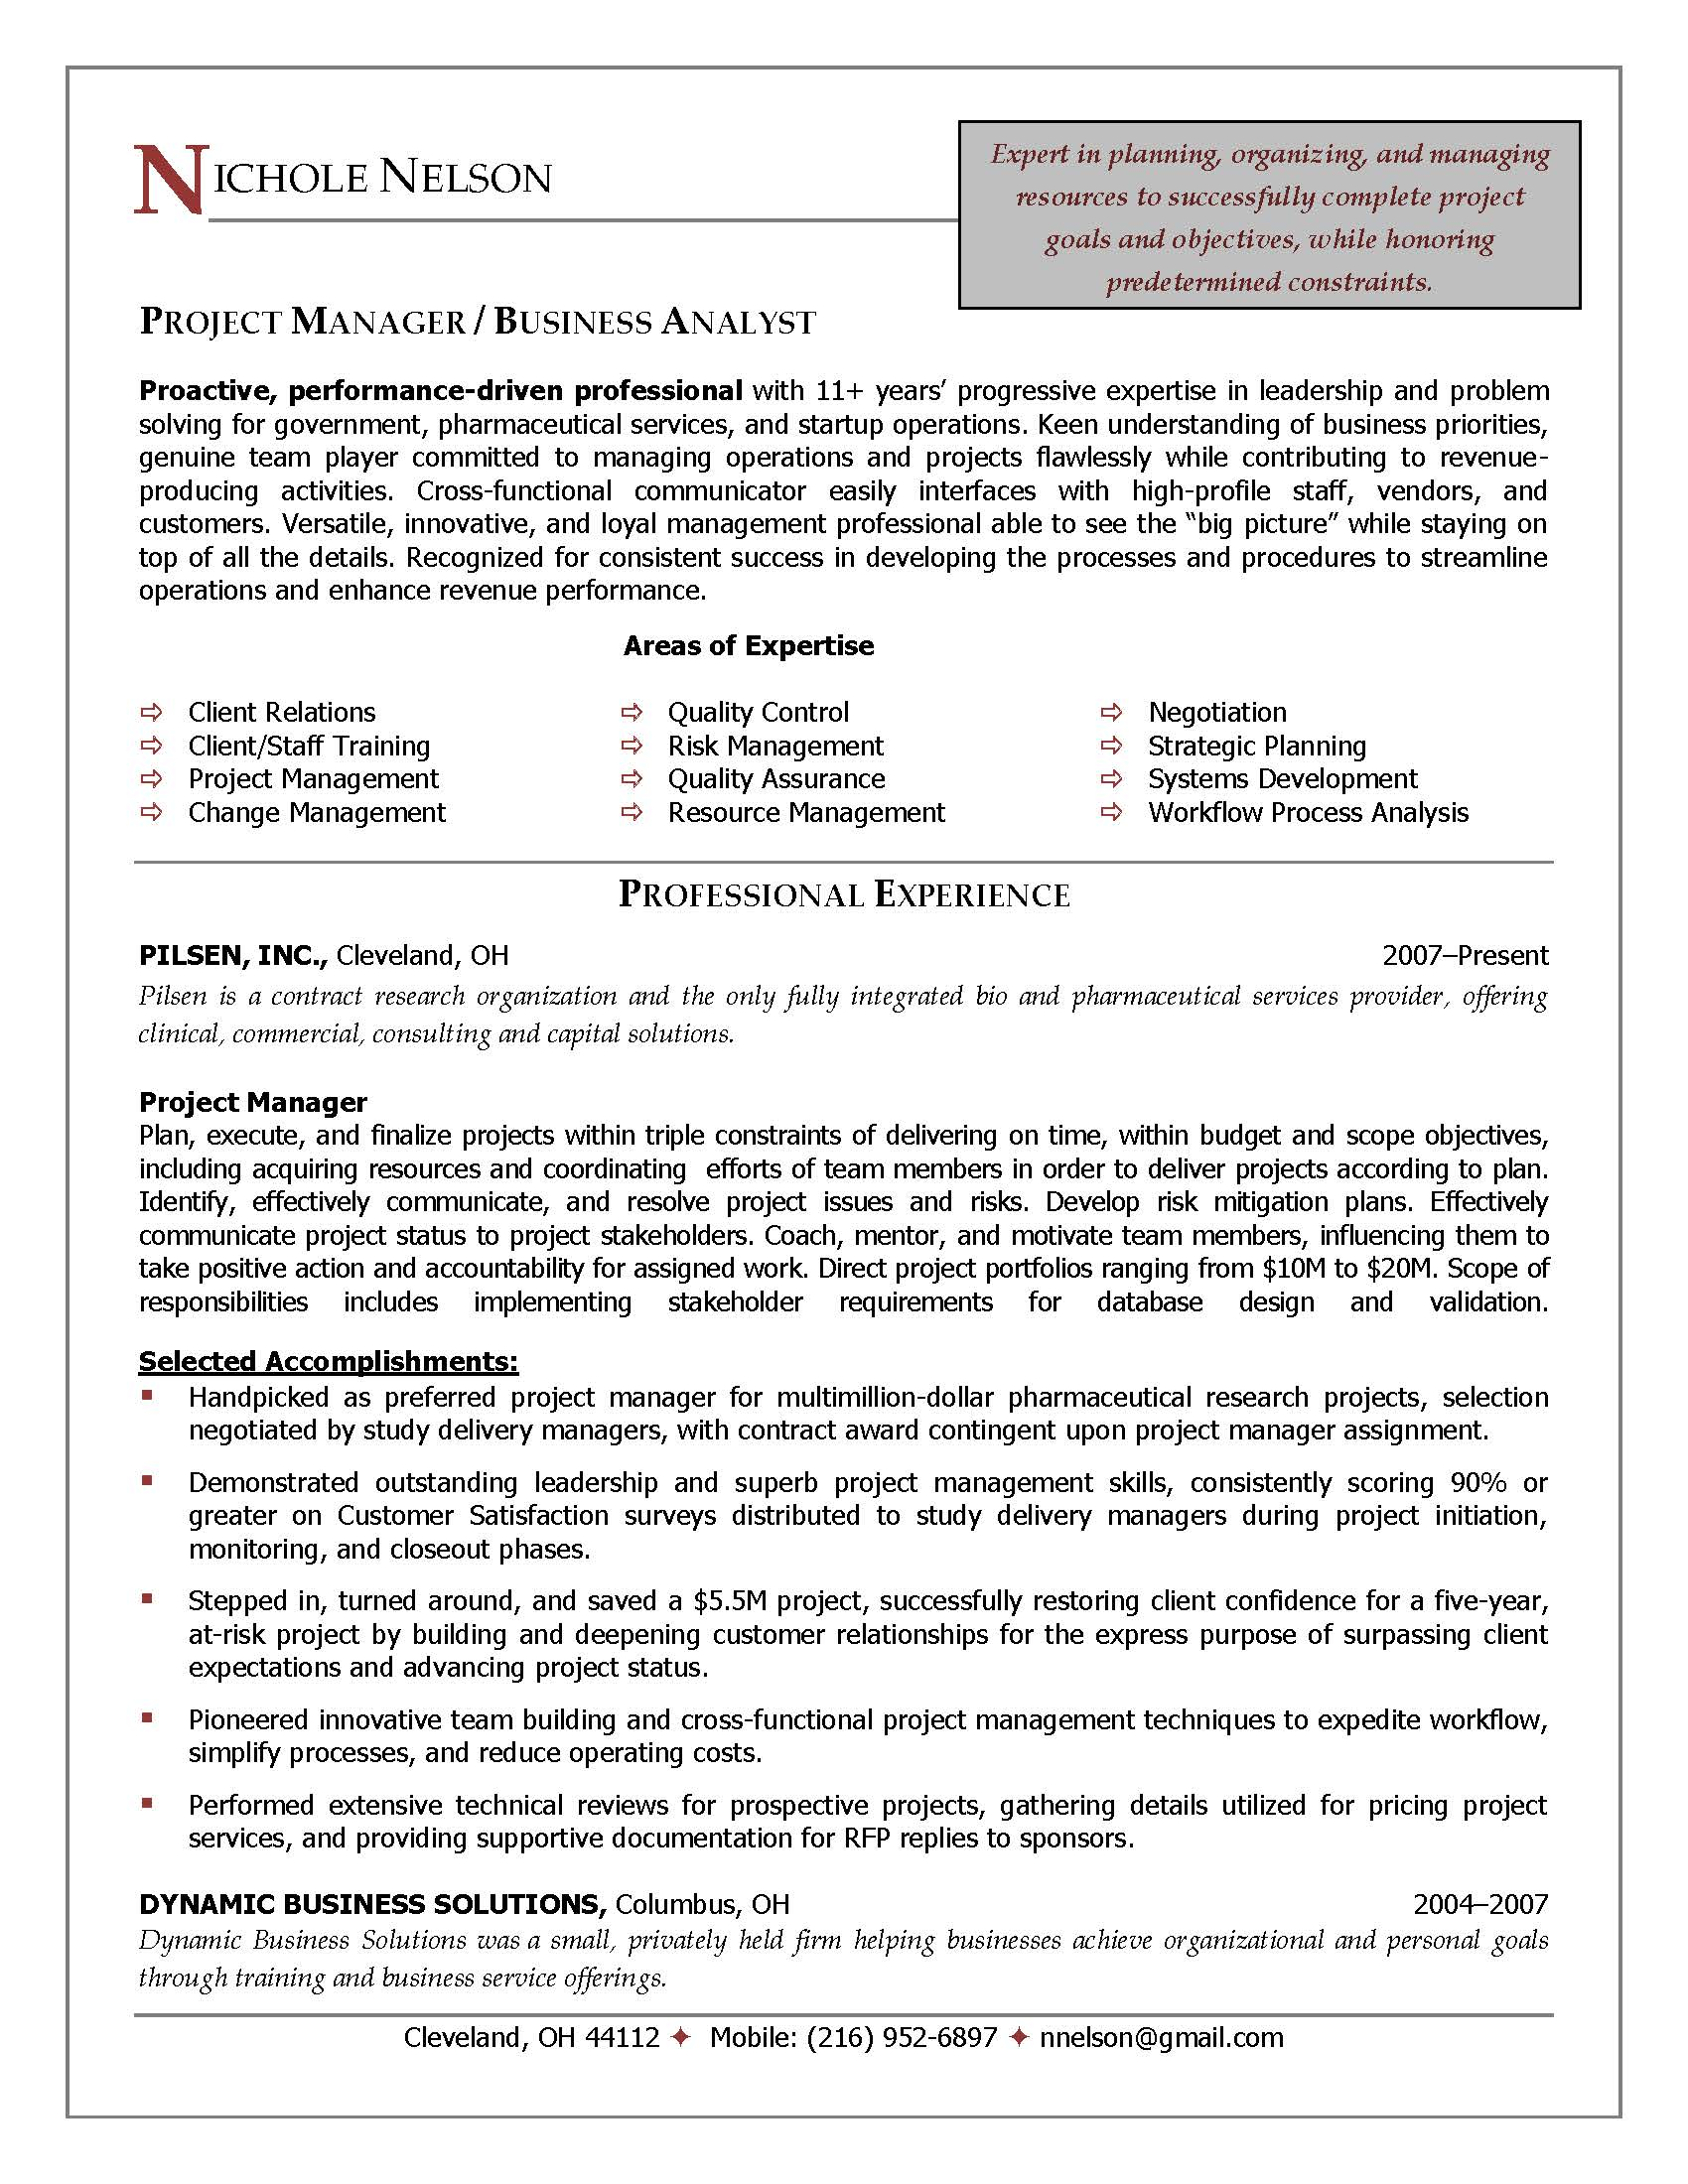 resume project manager for internet software company bestsampleresume resume examples community involvement software project manager resume